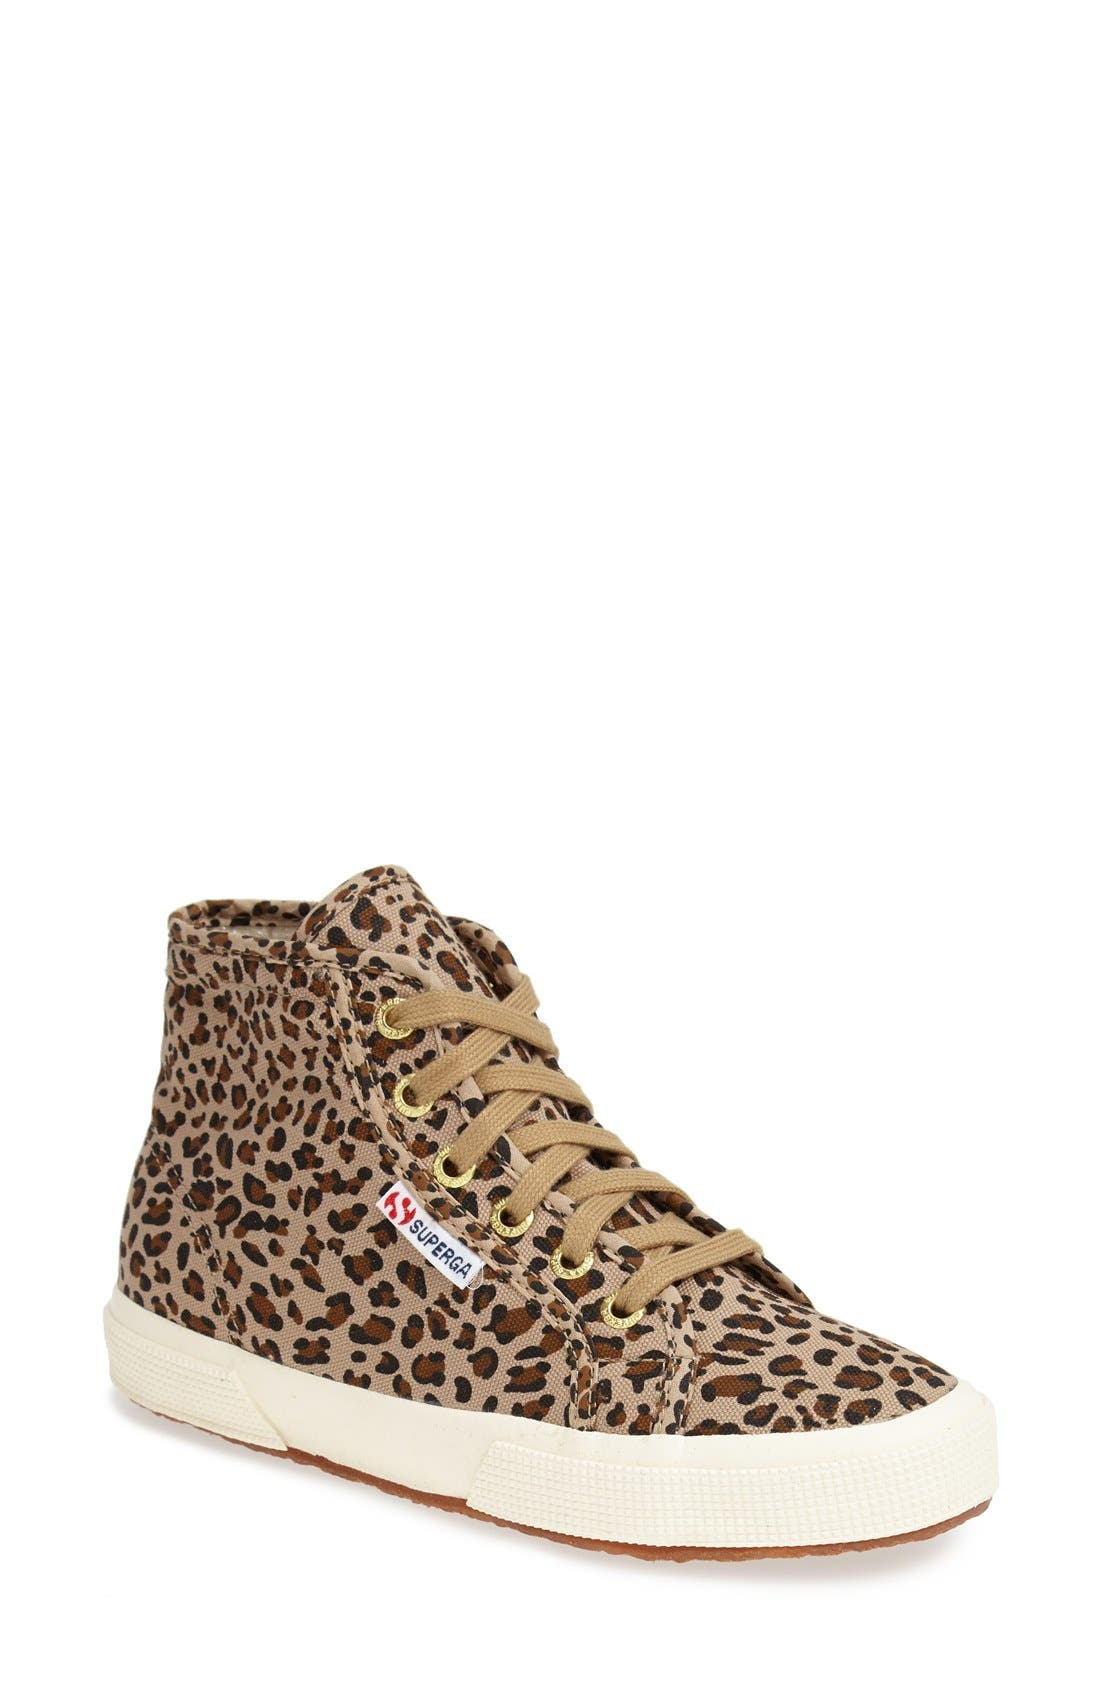 Alternate Image 1 Selected - Superga 'Leo' High Top Sneaker (Women)